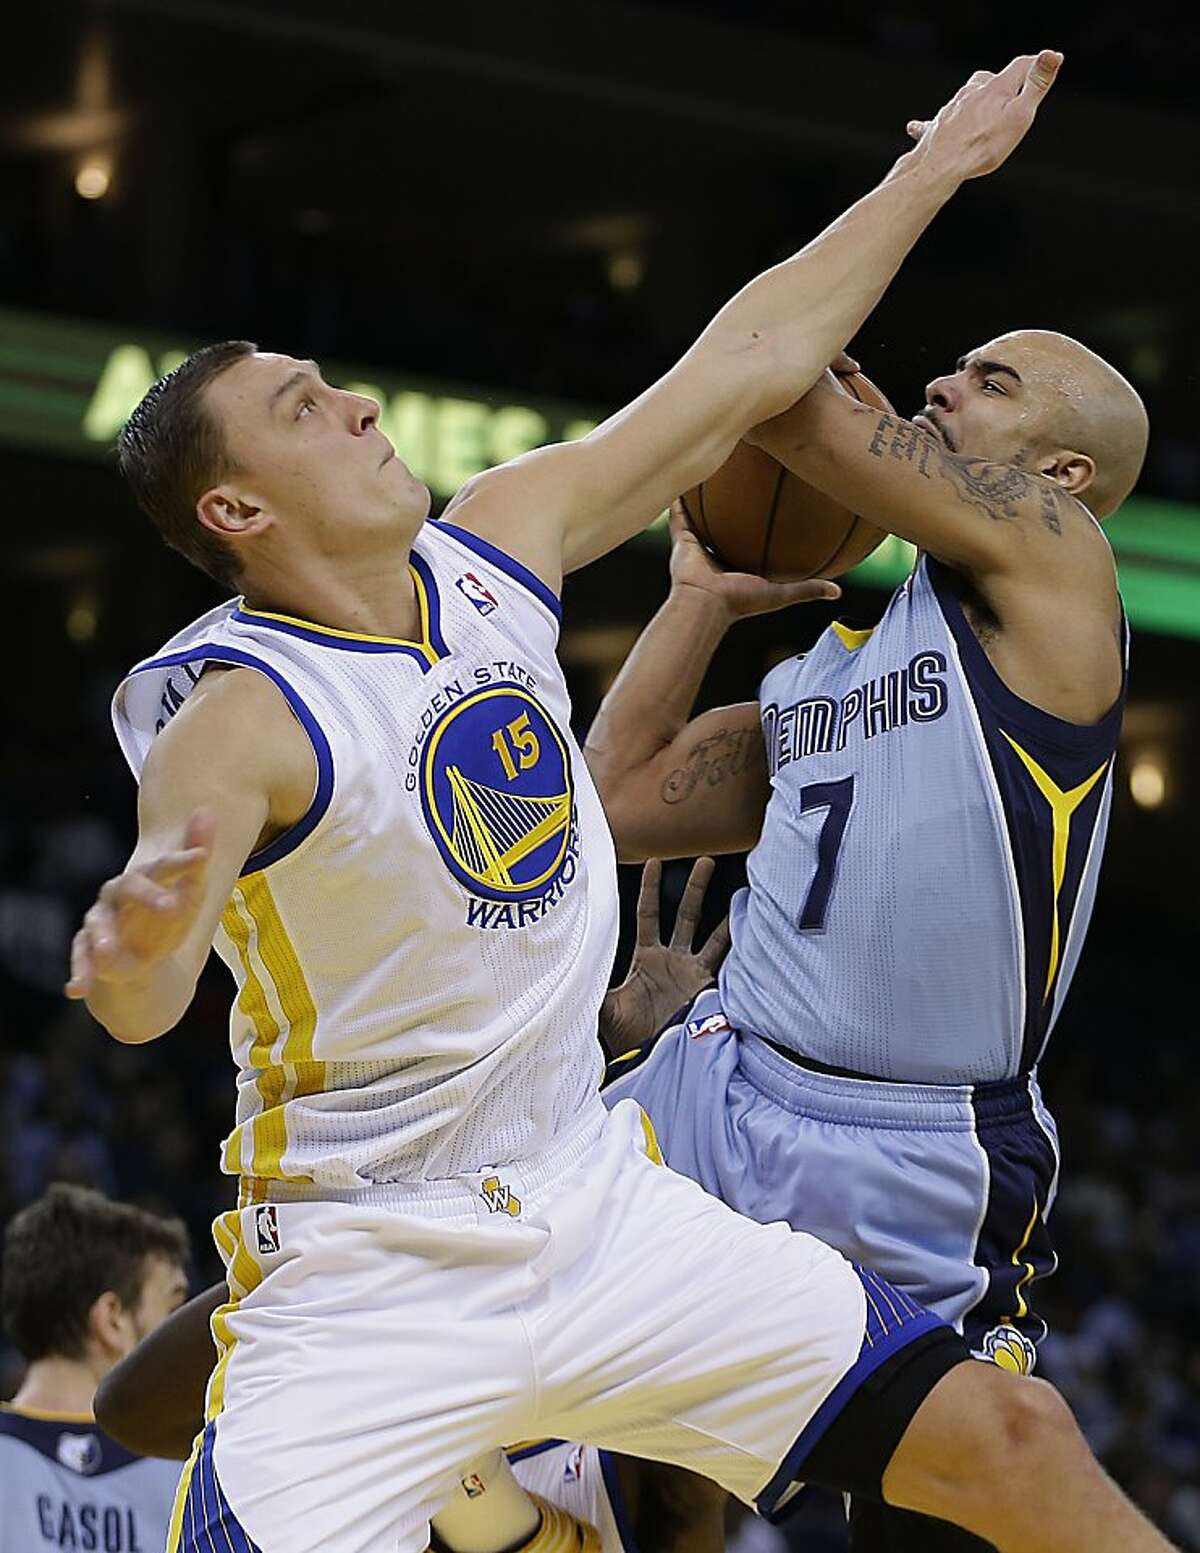 Memphis Grizzlies' Jerryd Bayless, right, shoots against Golden State Warriors' Andris Biedrins during the first half of an NBA basketball game on Wednesday, Jan. 9, 2013, in Oakland, Calif. (AP Photo/Ben Margot)